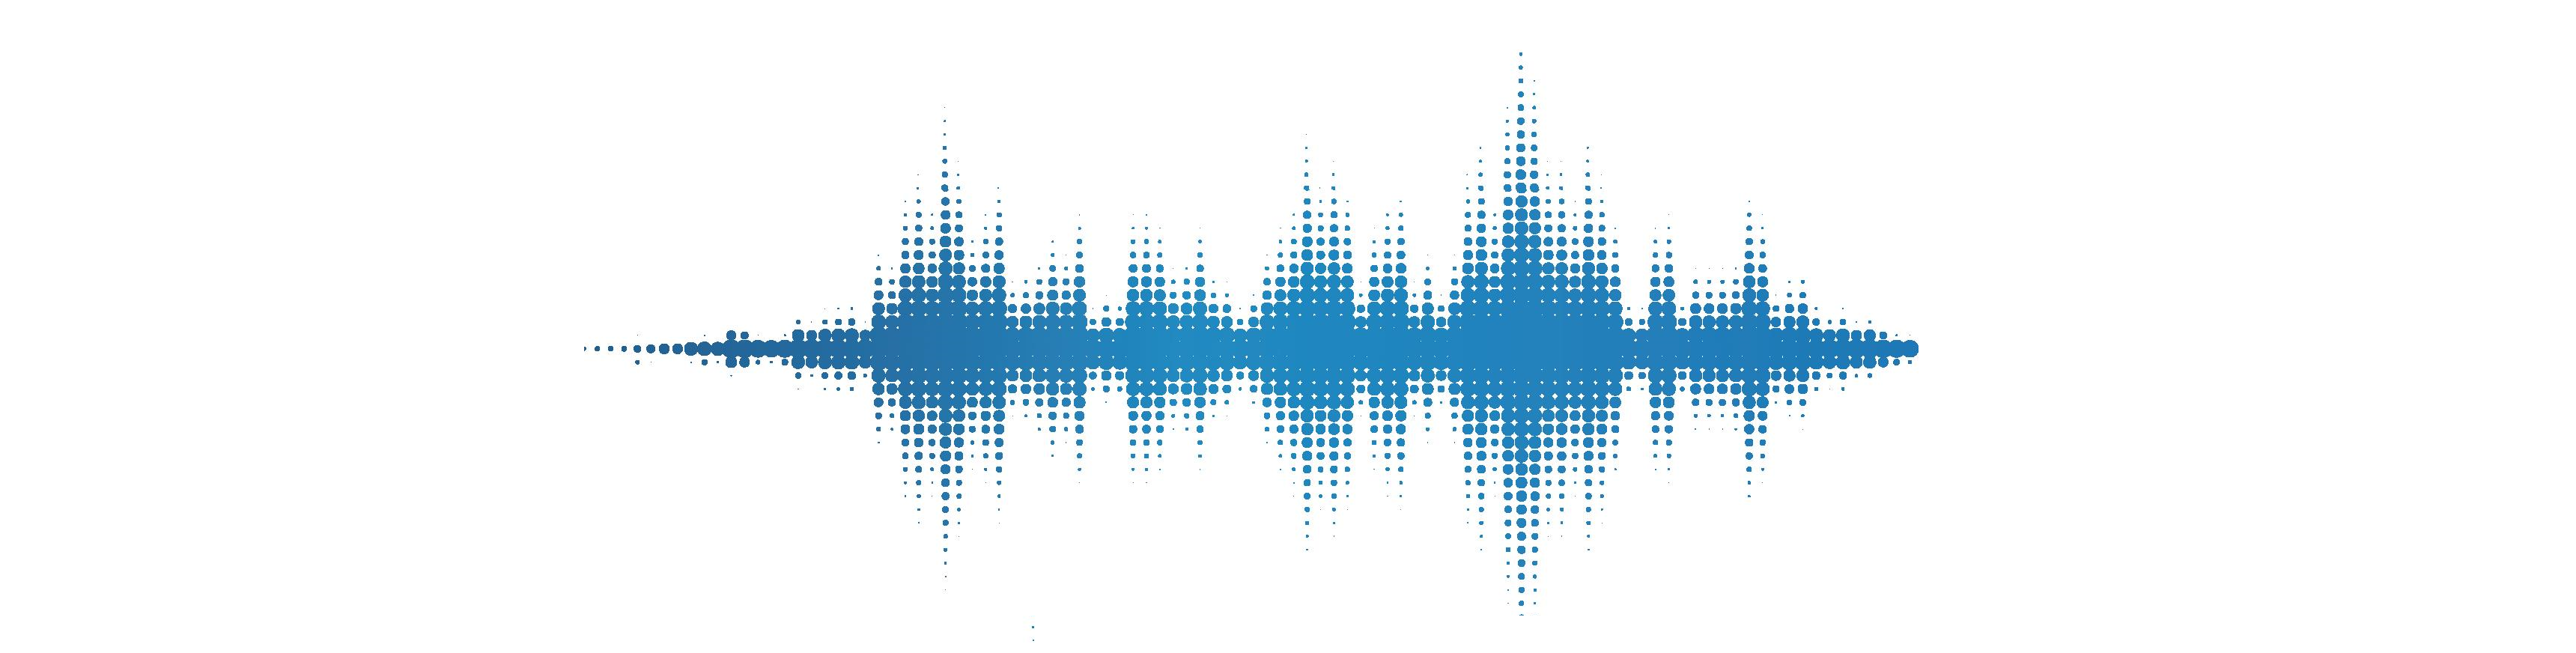 Sound wave png #35756 - Free Icons and PNG Backgrounds